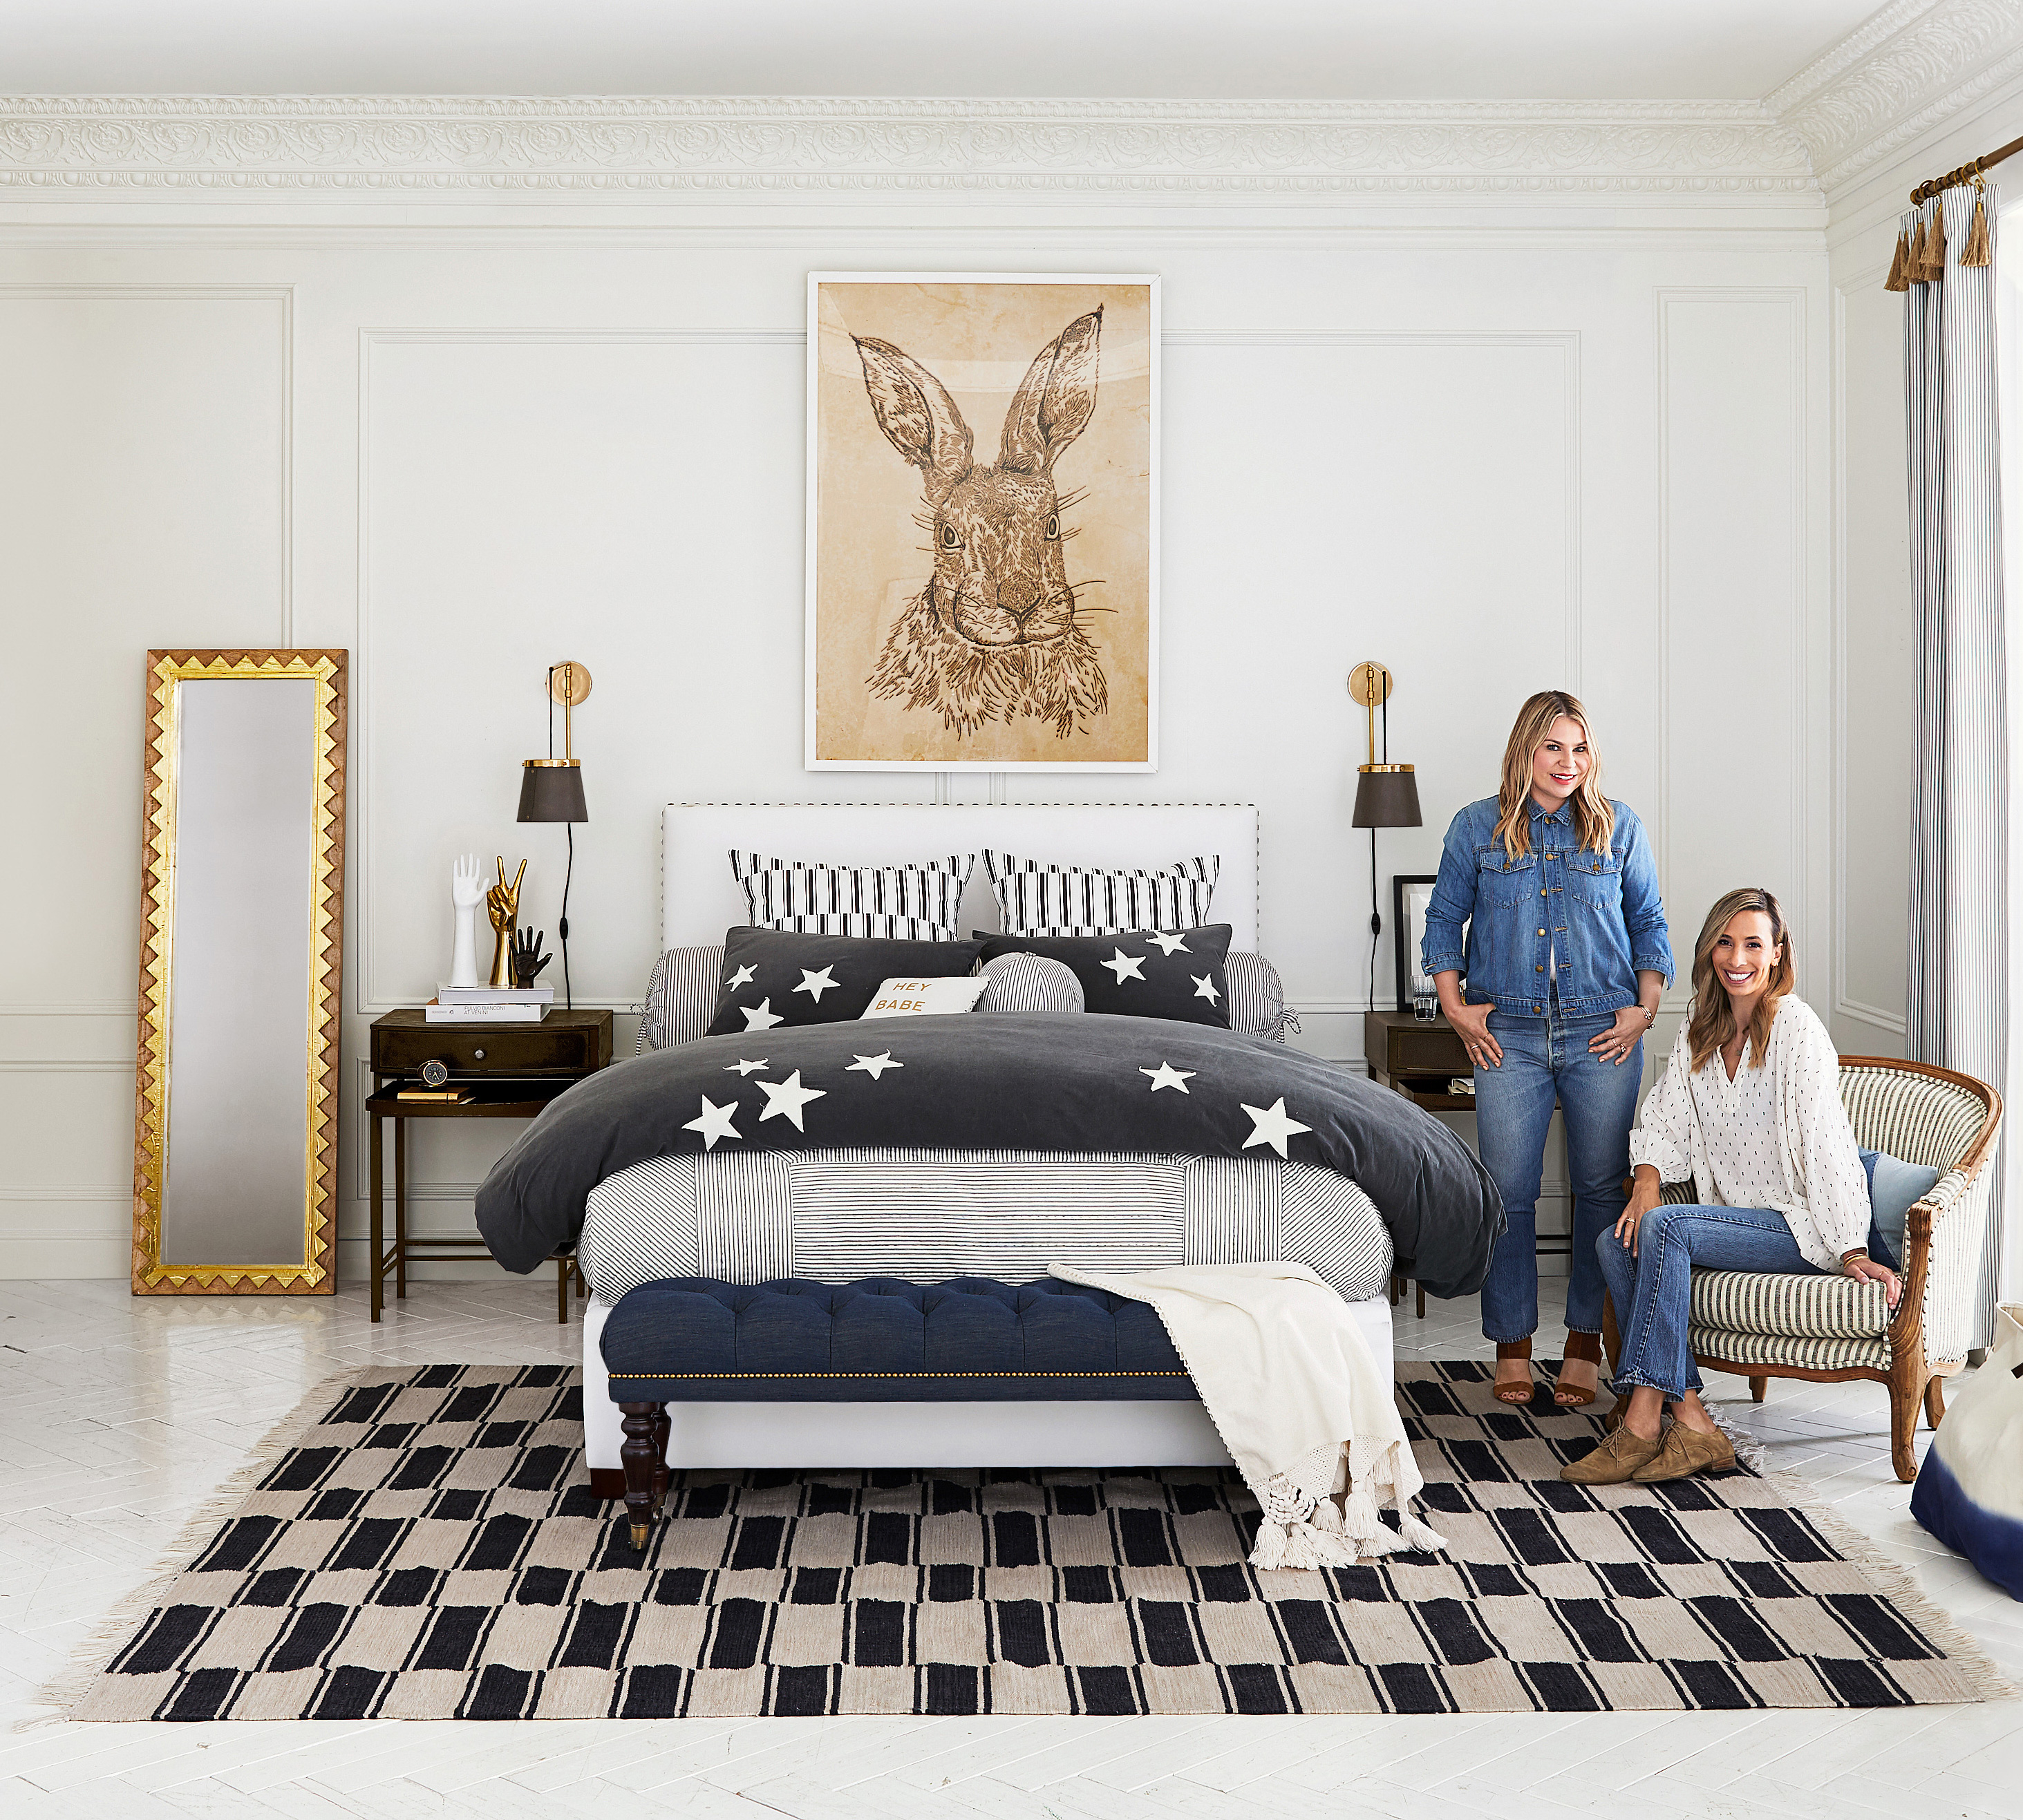 Pottery Barn Furniture In Store Pickup: Pottery Barn Debuts Home Collaboration With Emily Current